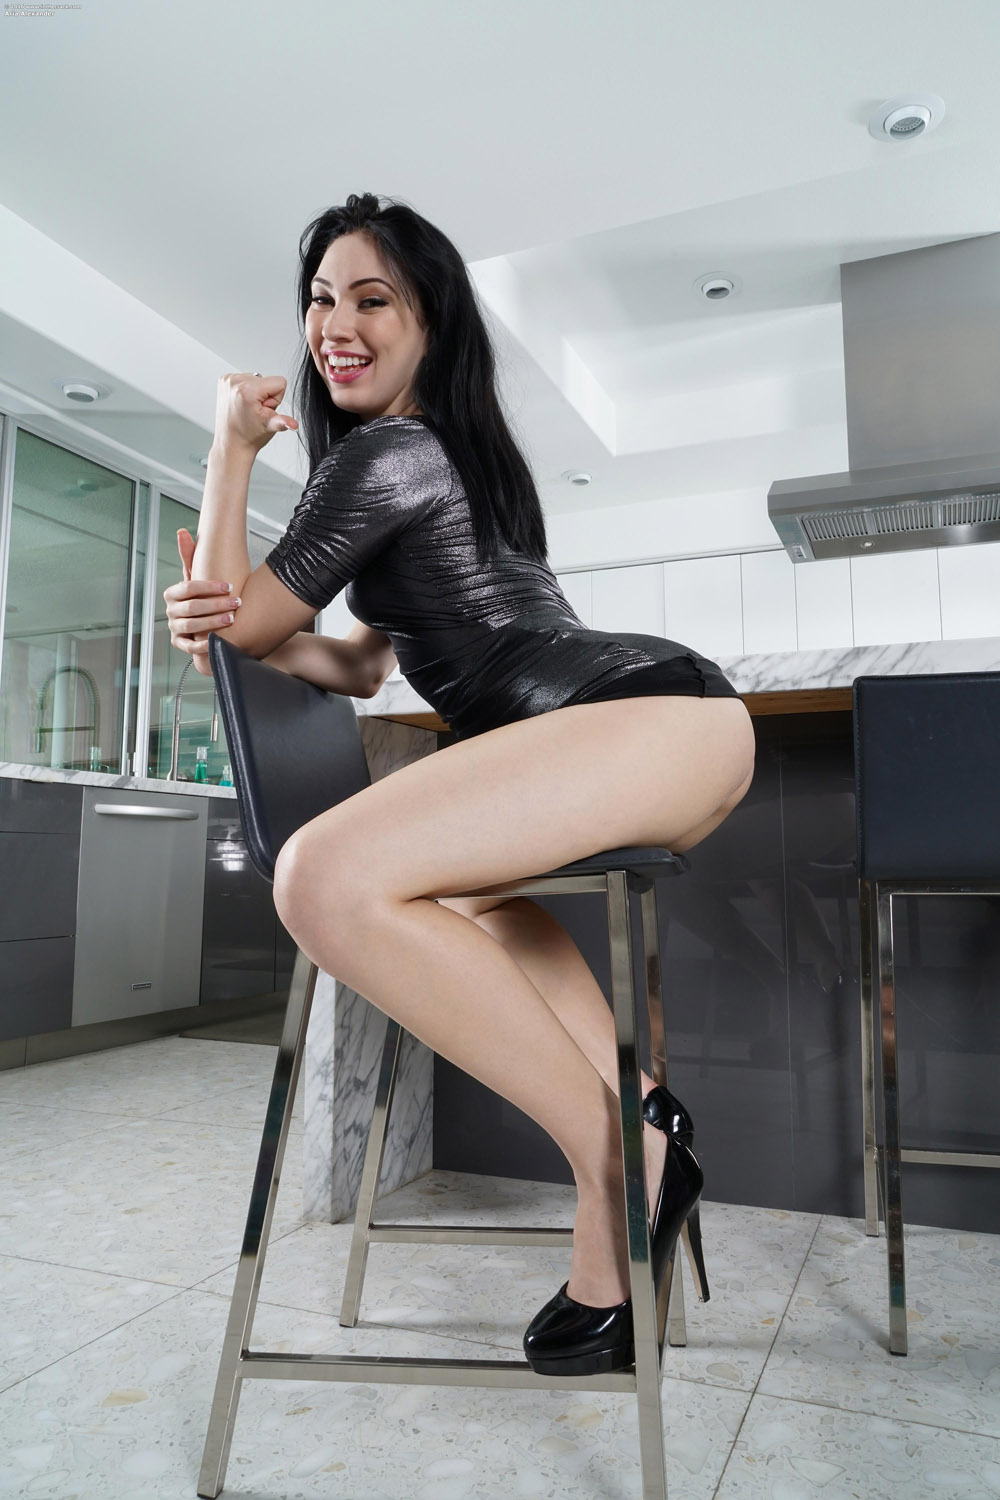 Aria alexander is going to suck her bosses bbc - 2 2